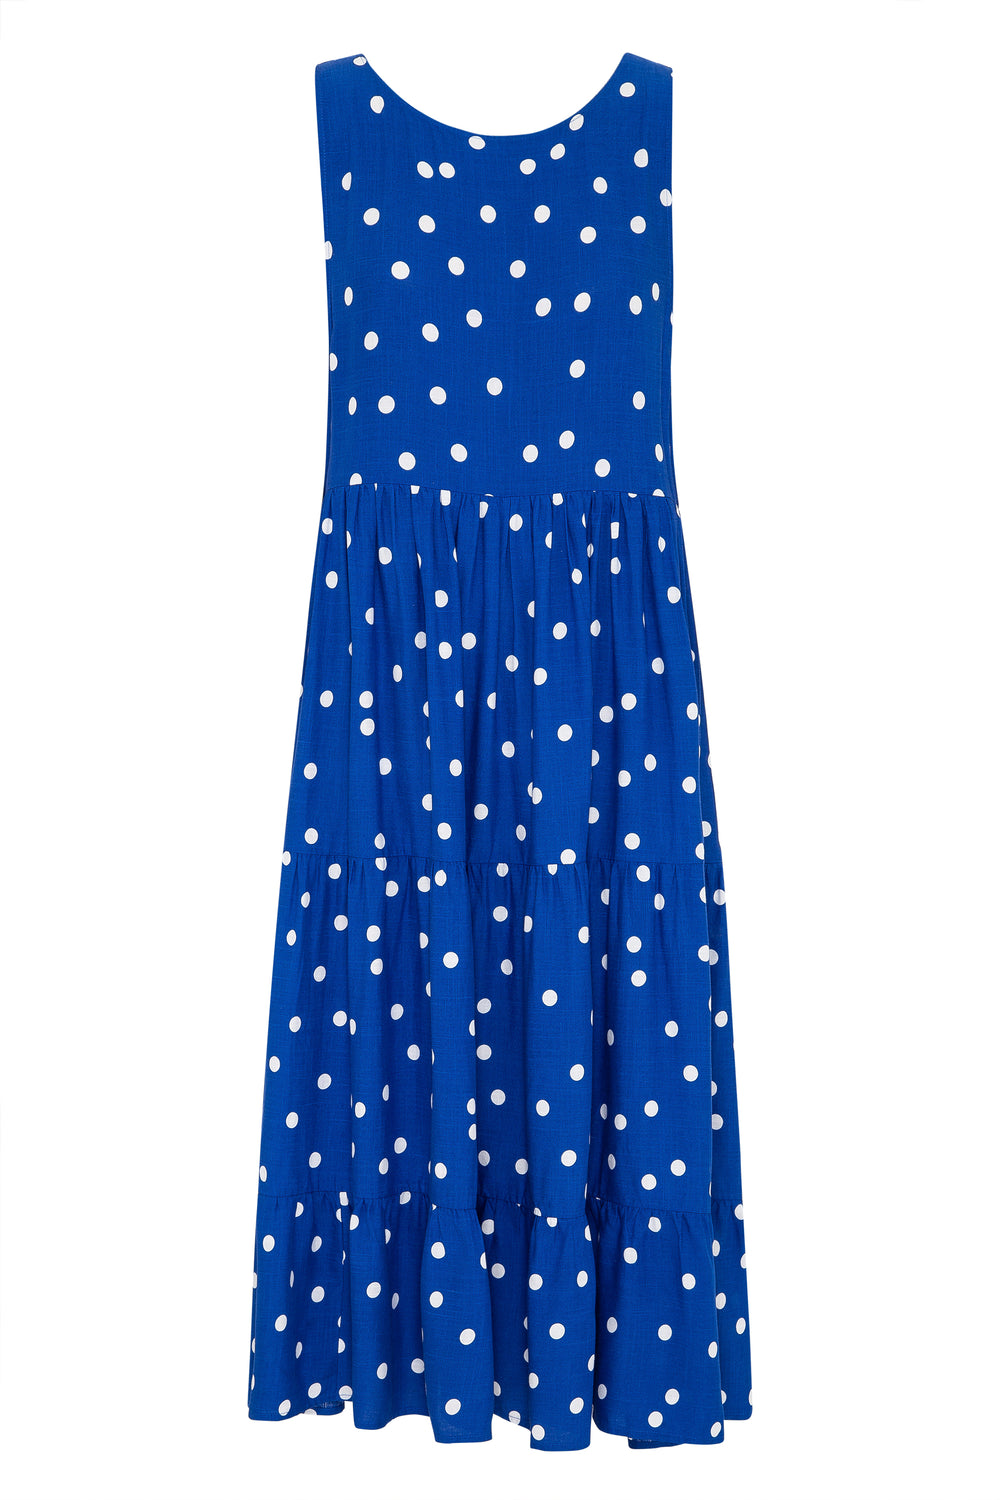 Olivia Midi Dress In Cobalt Spot